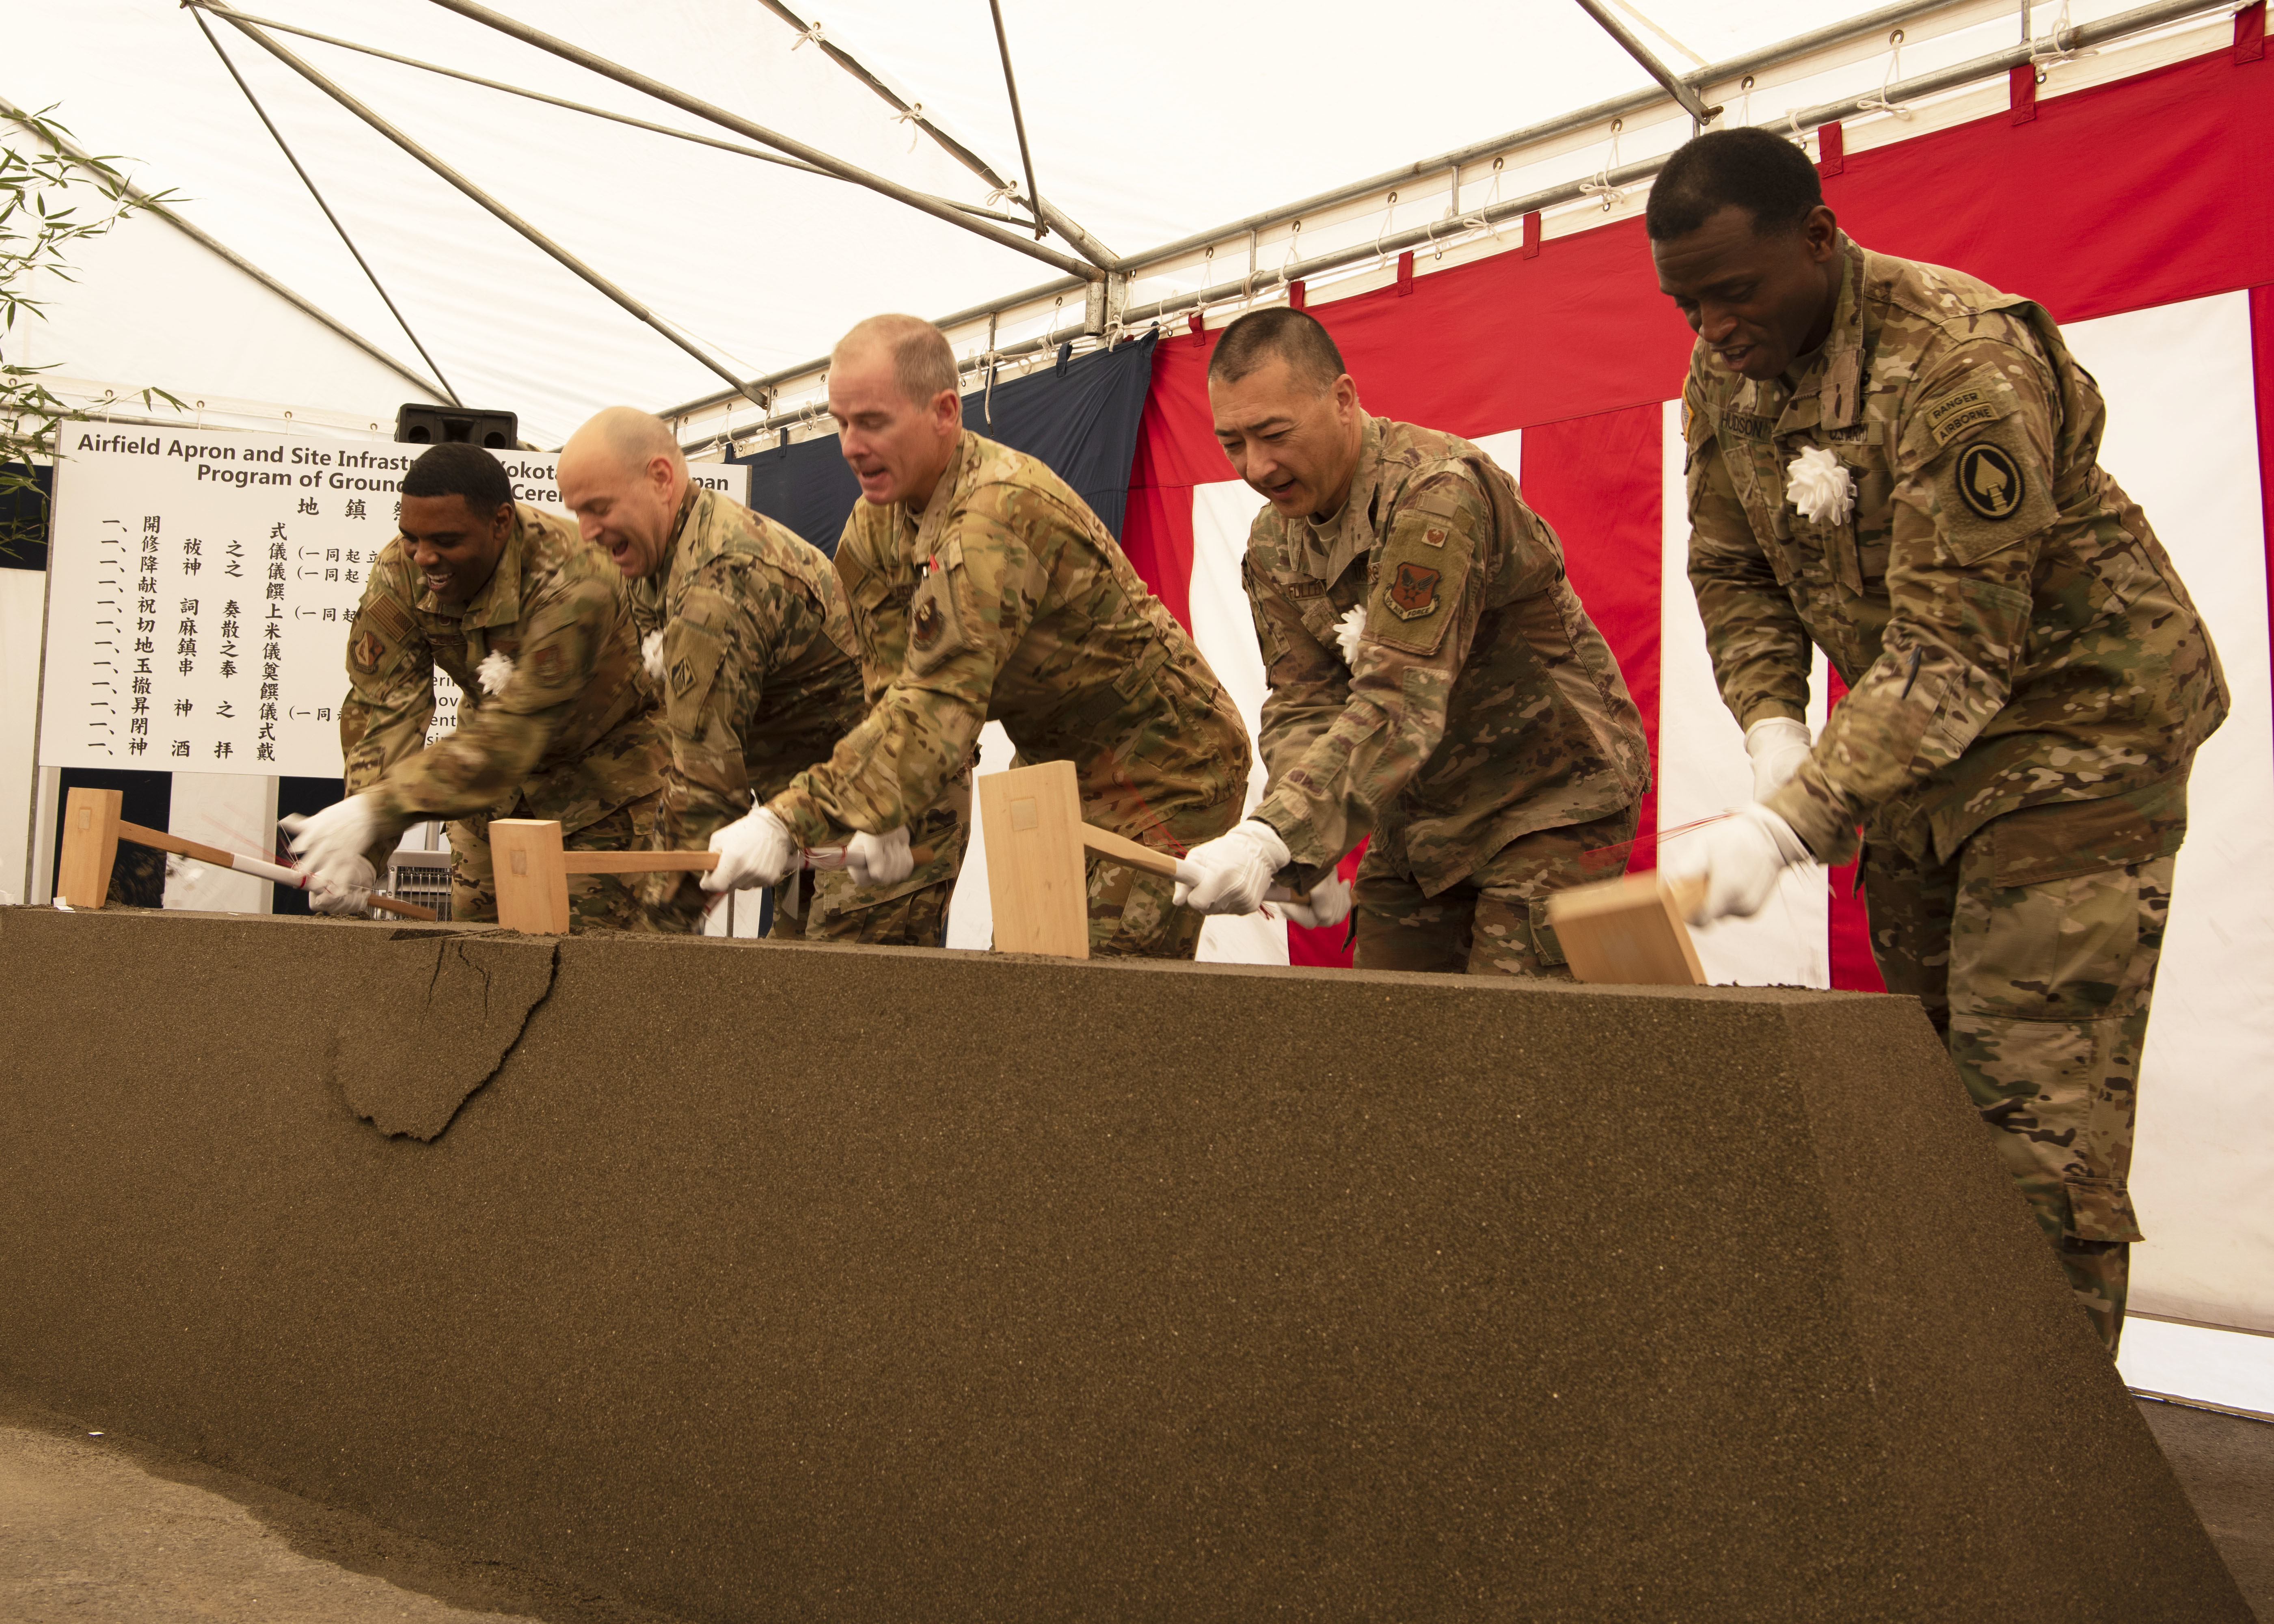 Air Force and Army partners overseeing the construction of the Air Force Special Operations Command airfield apron break ground at a ceremony held at Yokota Air Base, Japan, Dec. 5, 2019. The AFSOC complex will provide the 21st Special Operations Squadron a permanent home for the CV-22 Osprey as a new apron is added to the existing airfield pavements as well as new utility and communication infrastructure. (Staff Sgt. Taylor Workman)